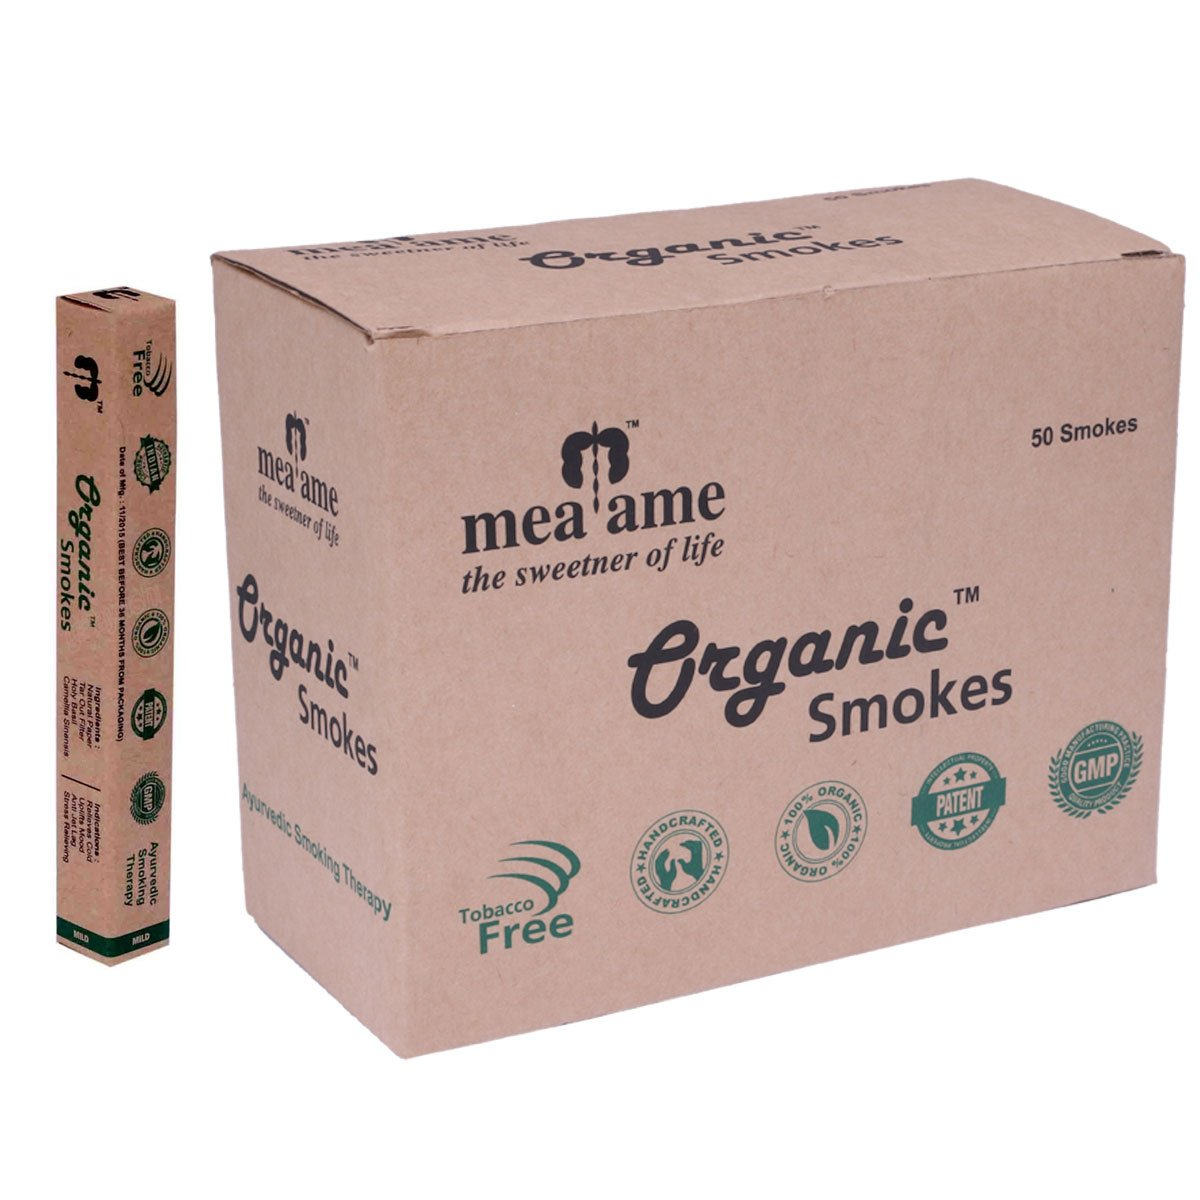 Organic Smokes - Luxury Herbal Cigarettes in Regular Flavor. 50's Economy box. Filter fitted. 100% Herbal, GMP Certified. Quit Smoking Aid. Hand crafted. Excellent Alternative to Ecstasy and Honeyrose